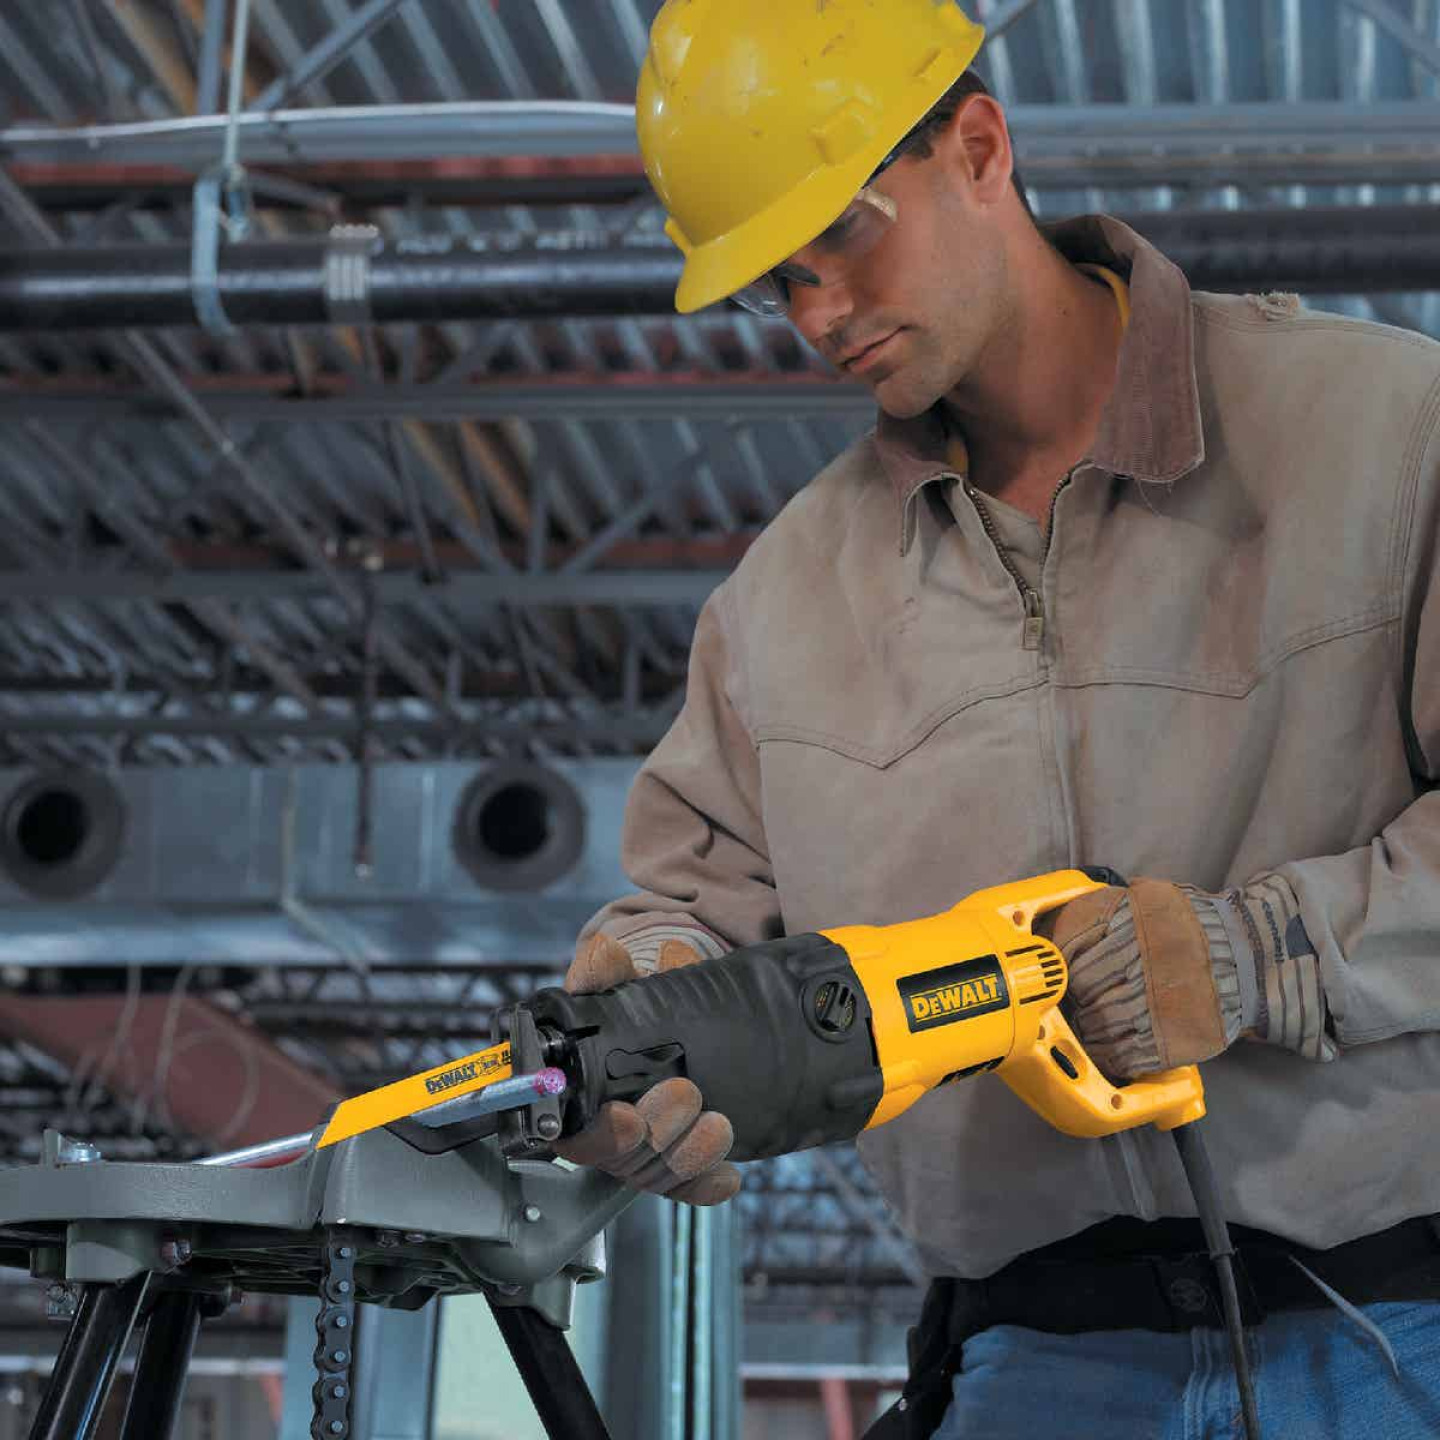 DeWalt 13-Amp Reciprocating Saw Kit Image 5